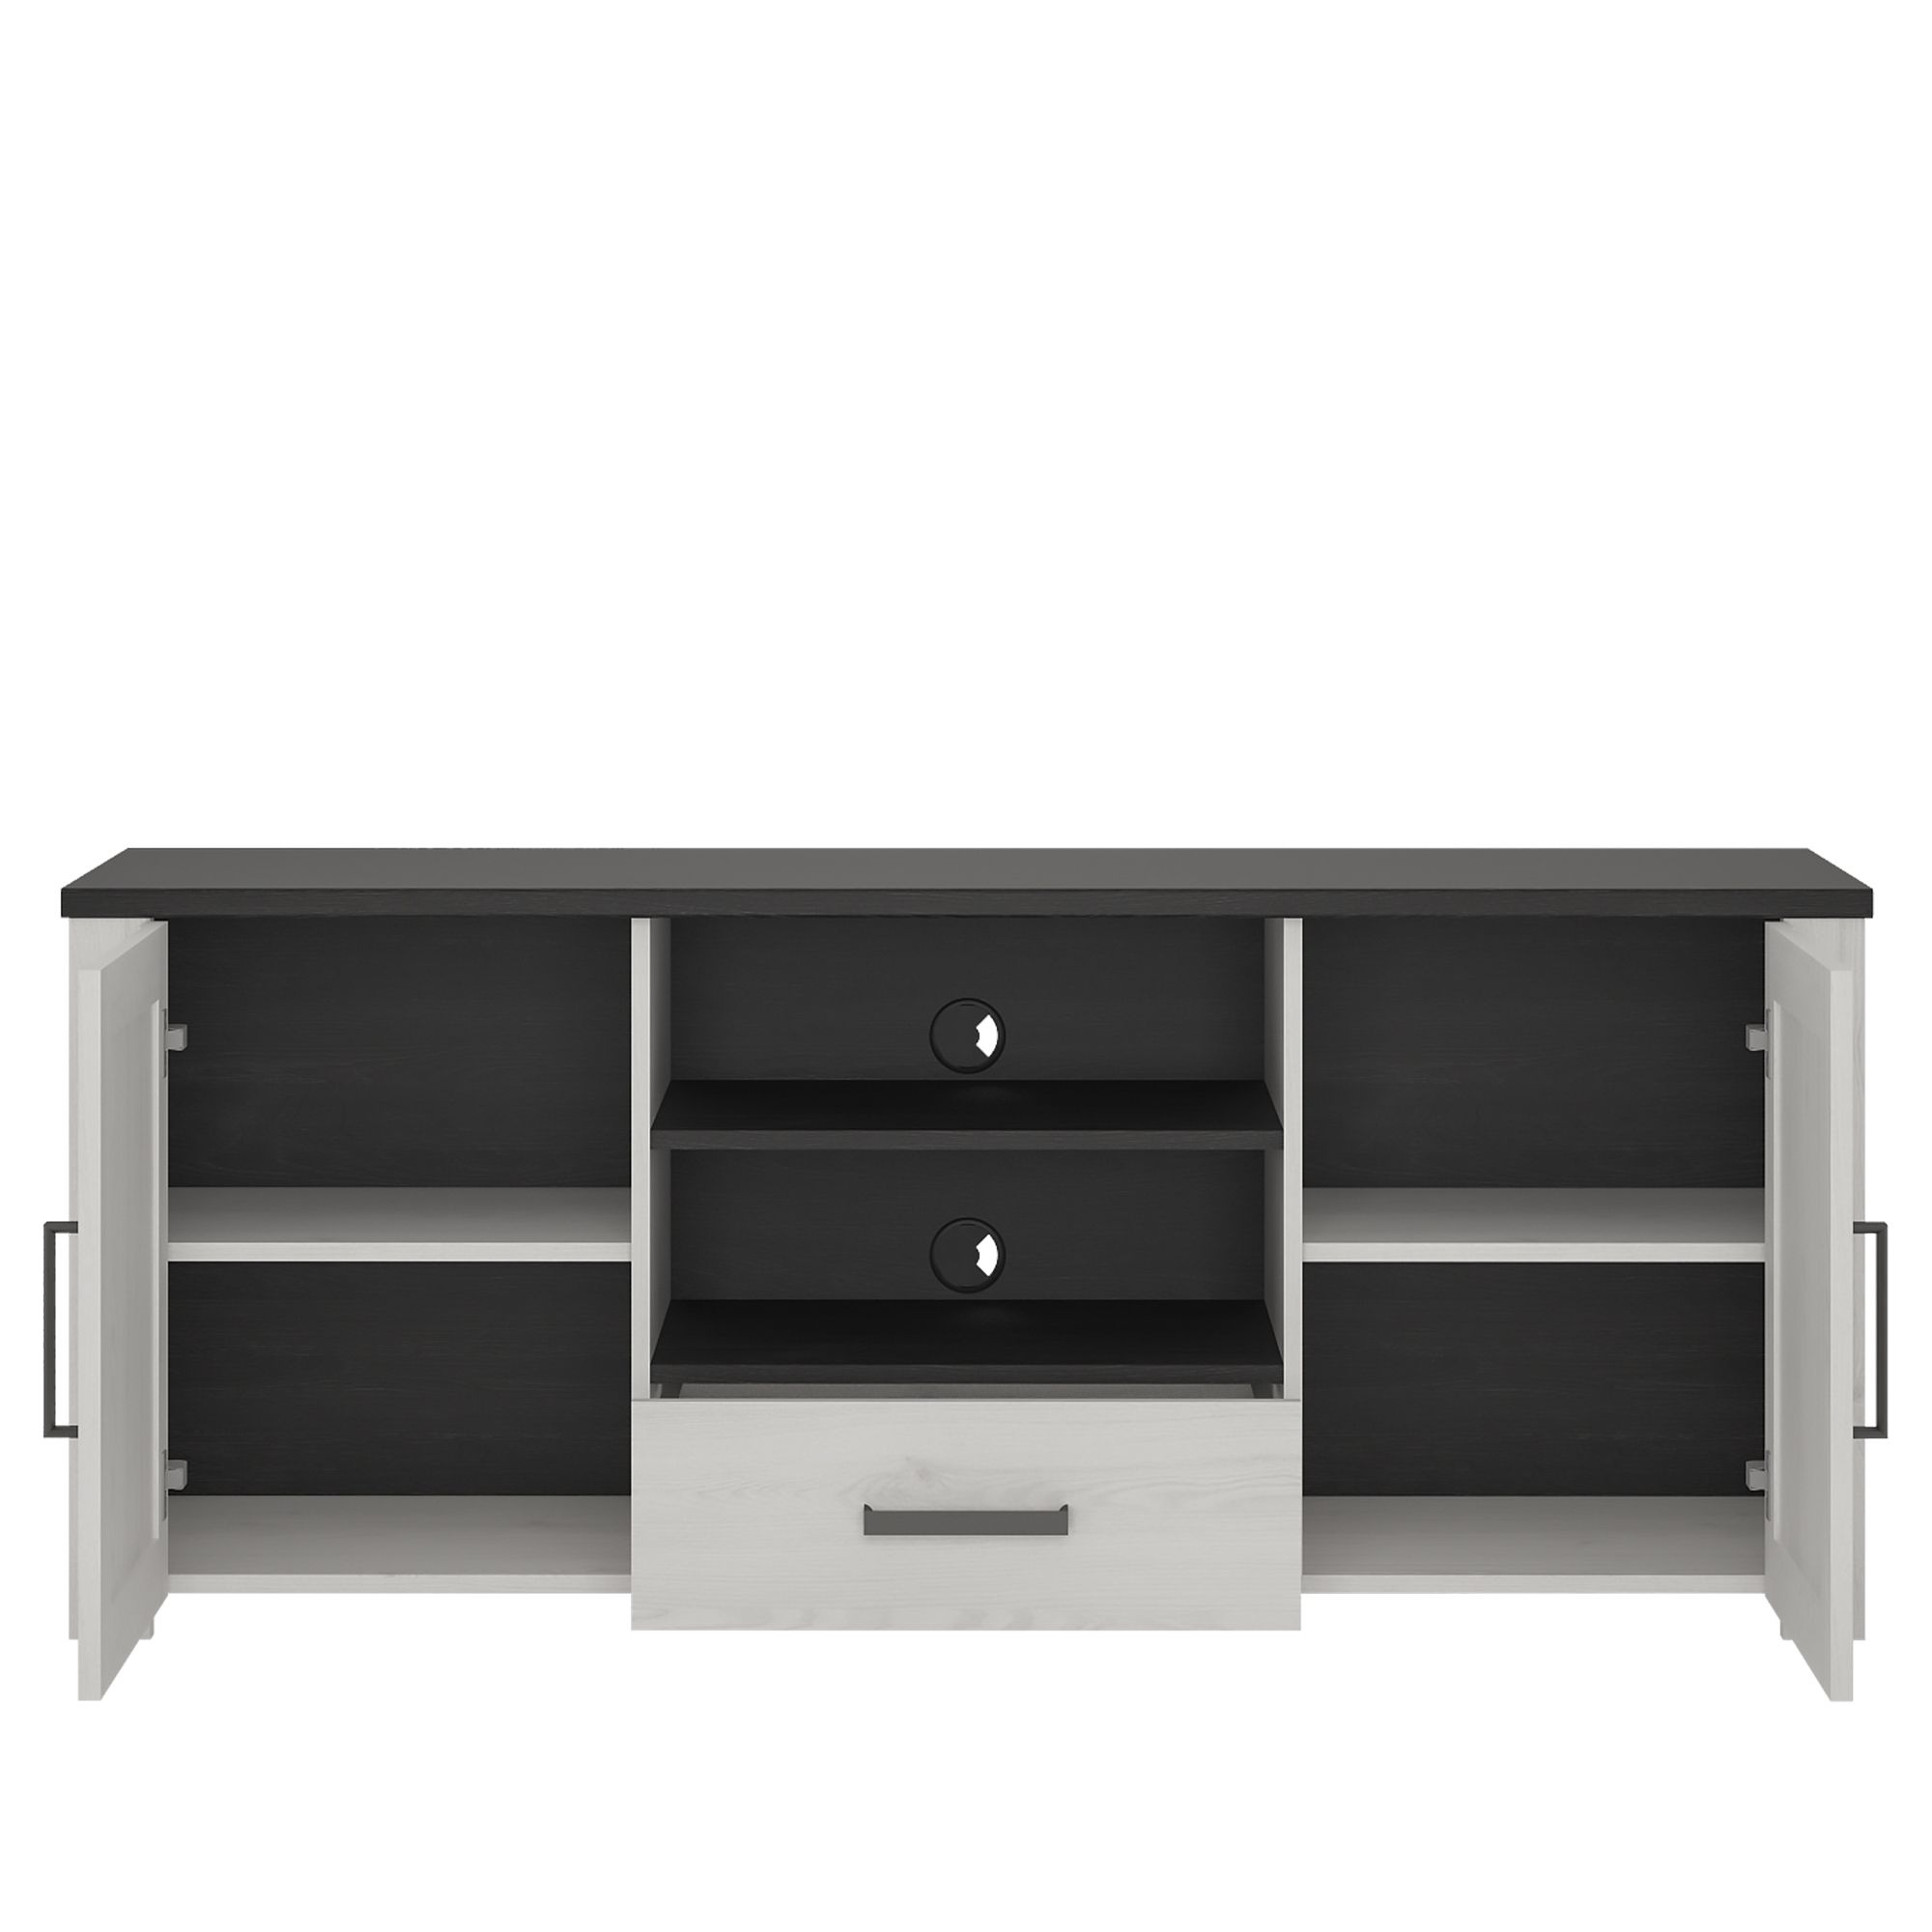 Provence High Tv Cabinet 2 Door 1 Drawer Intended For Tiva Ladder Tv Stands (View 4 of 11)